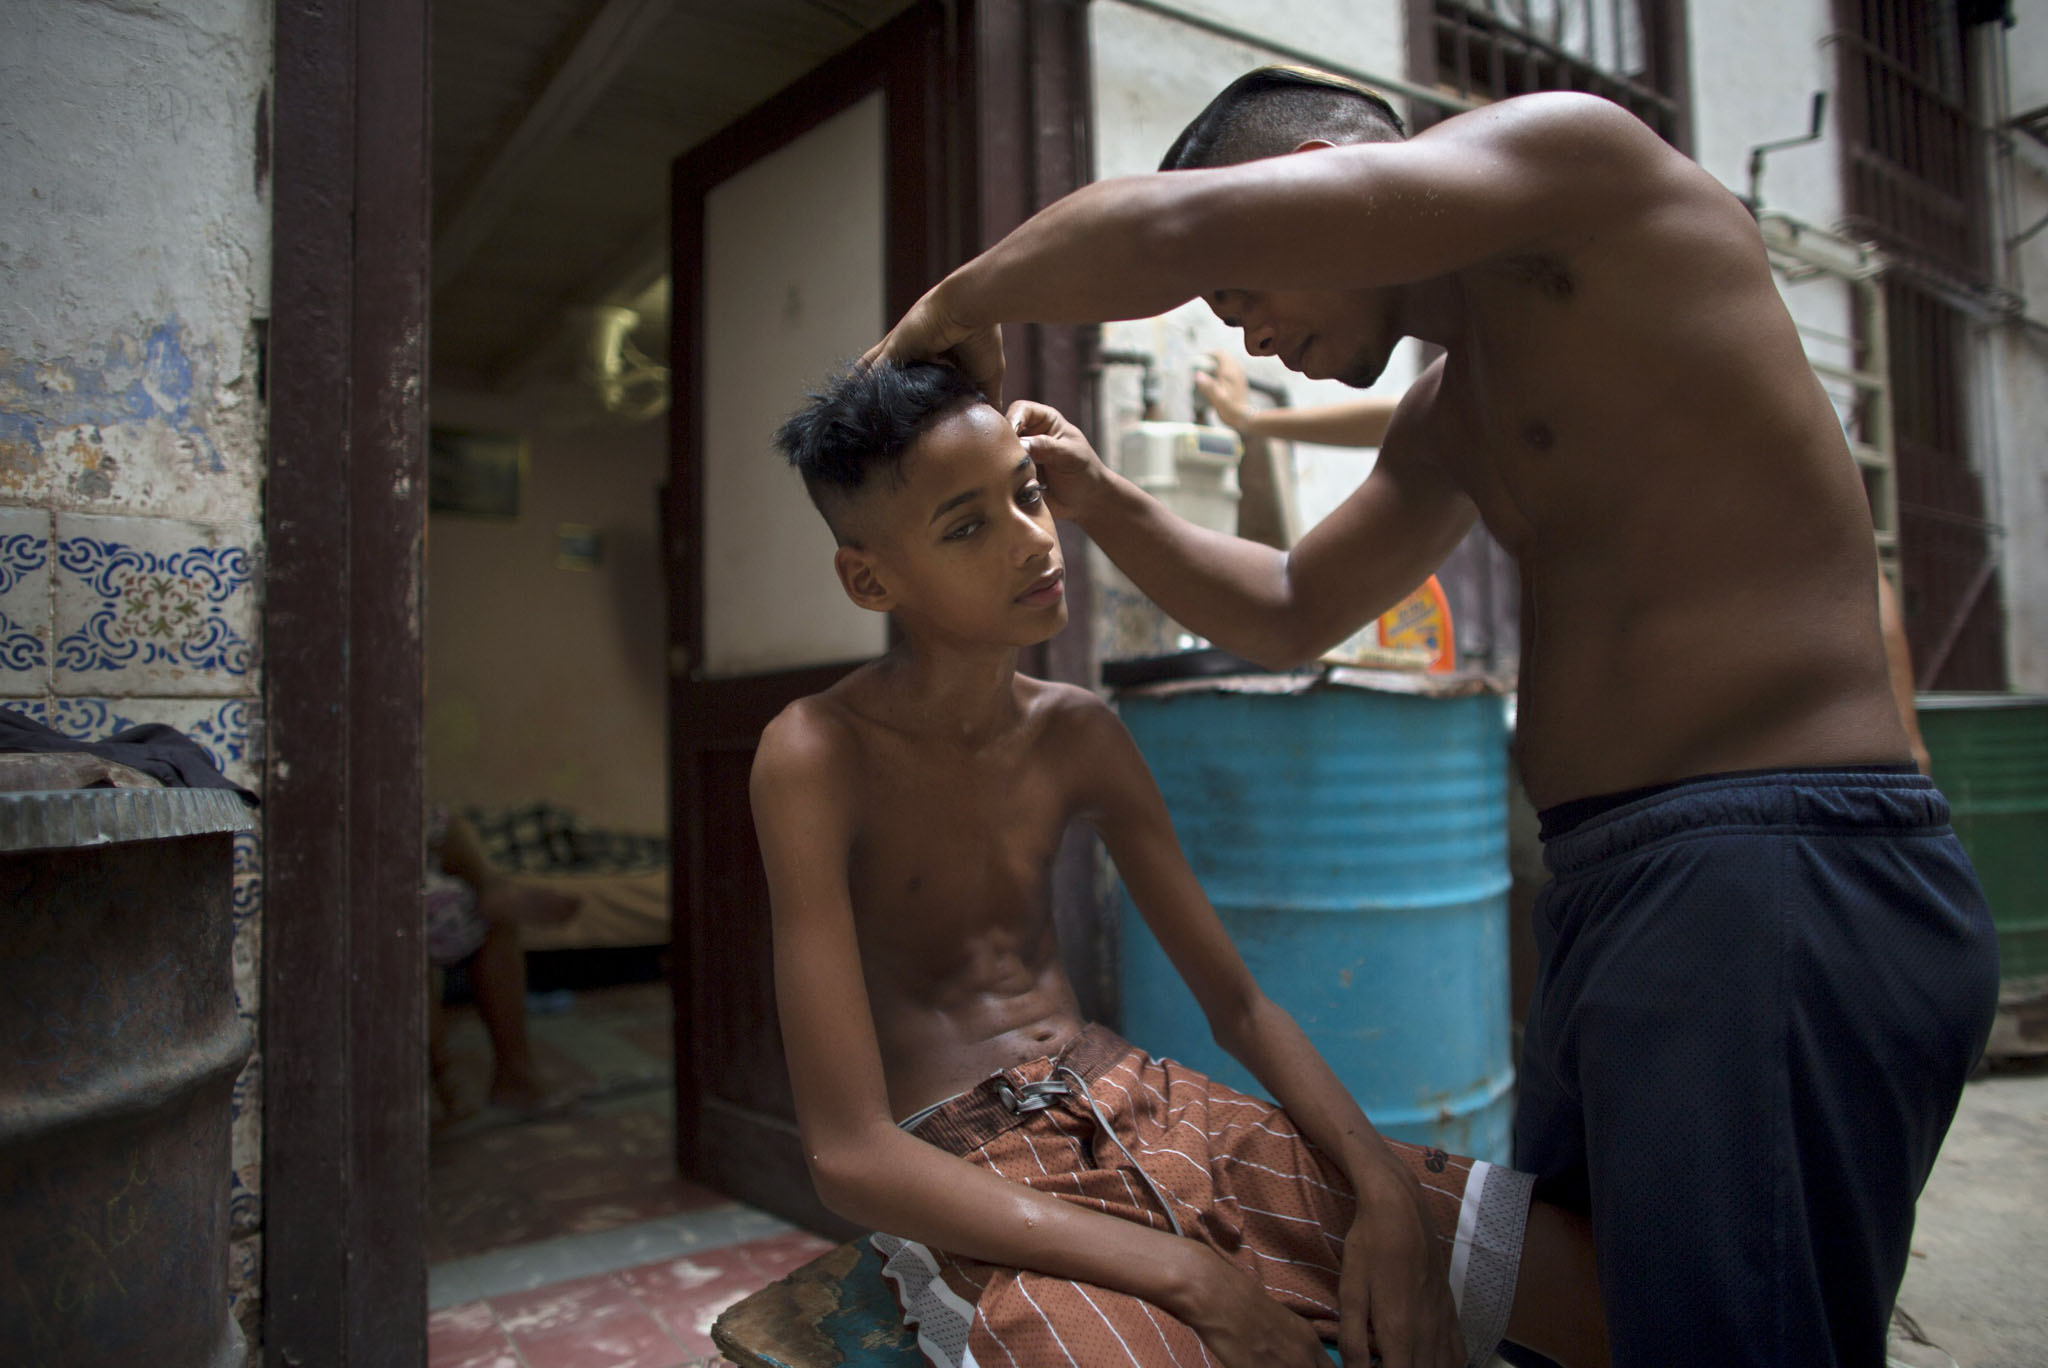 Samuel Garcia, 12, has his hair cut by a friend at the doorstep of his home in Havana, Cuba.